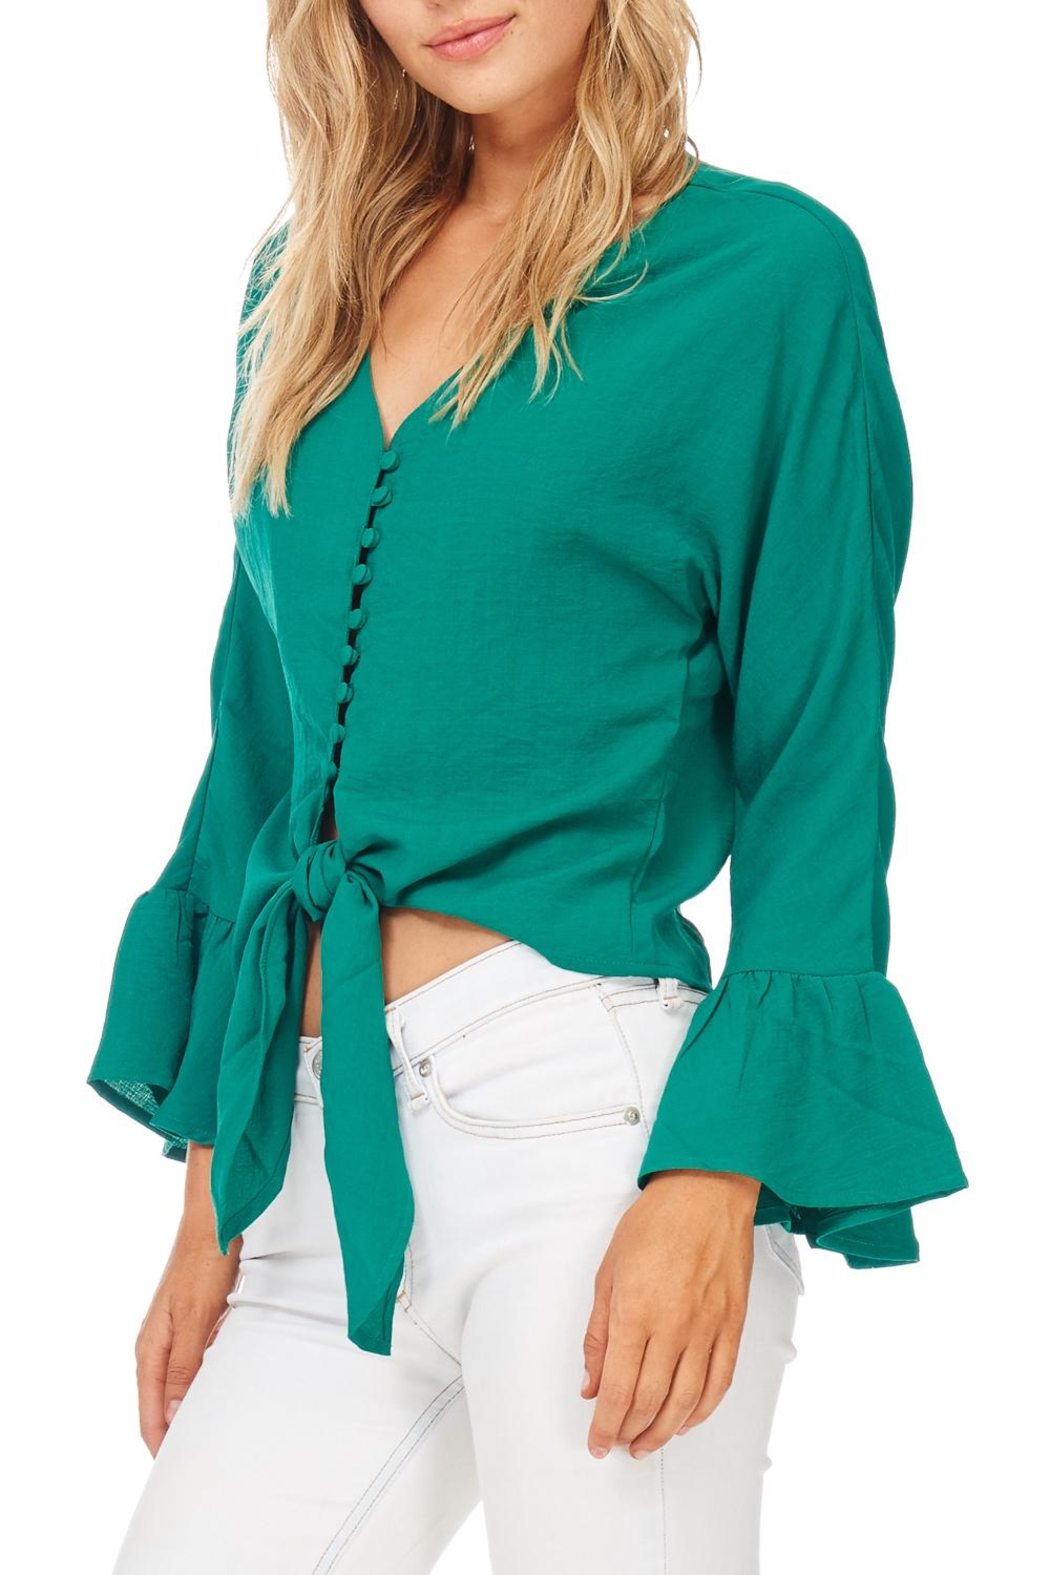 Miss Love Jade Bell Sleeve Blouse - Main Image